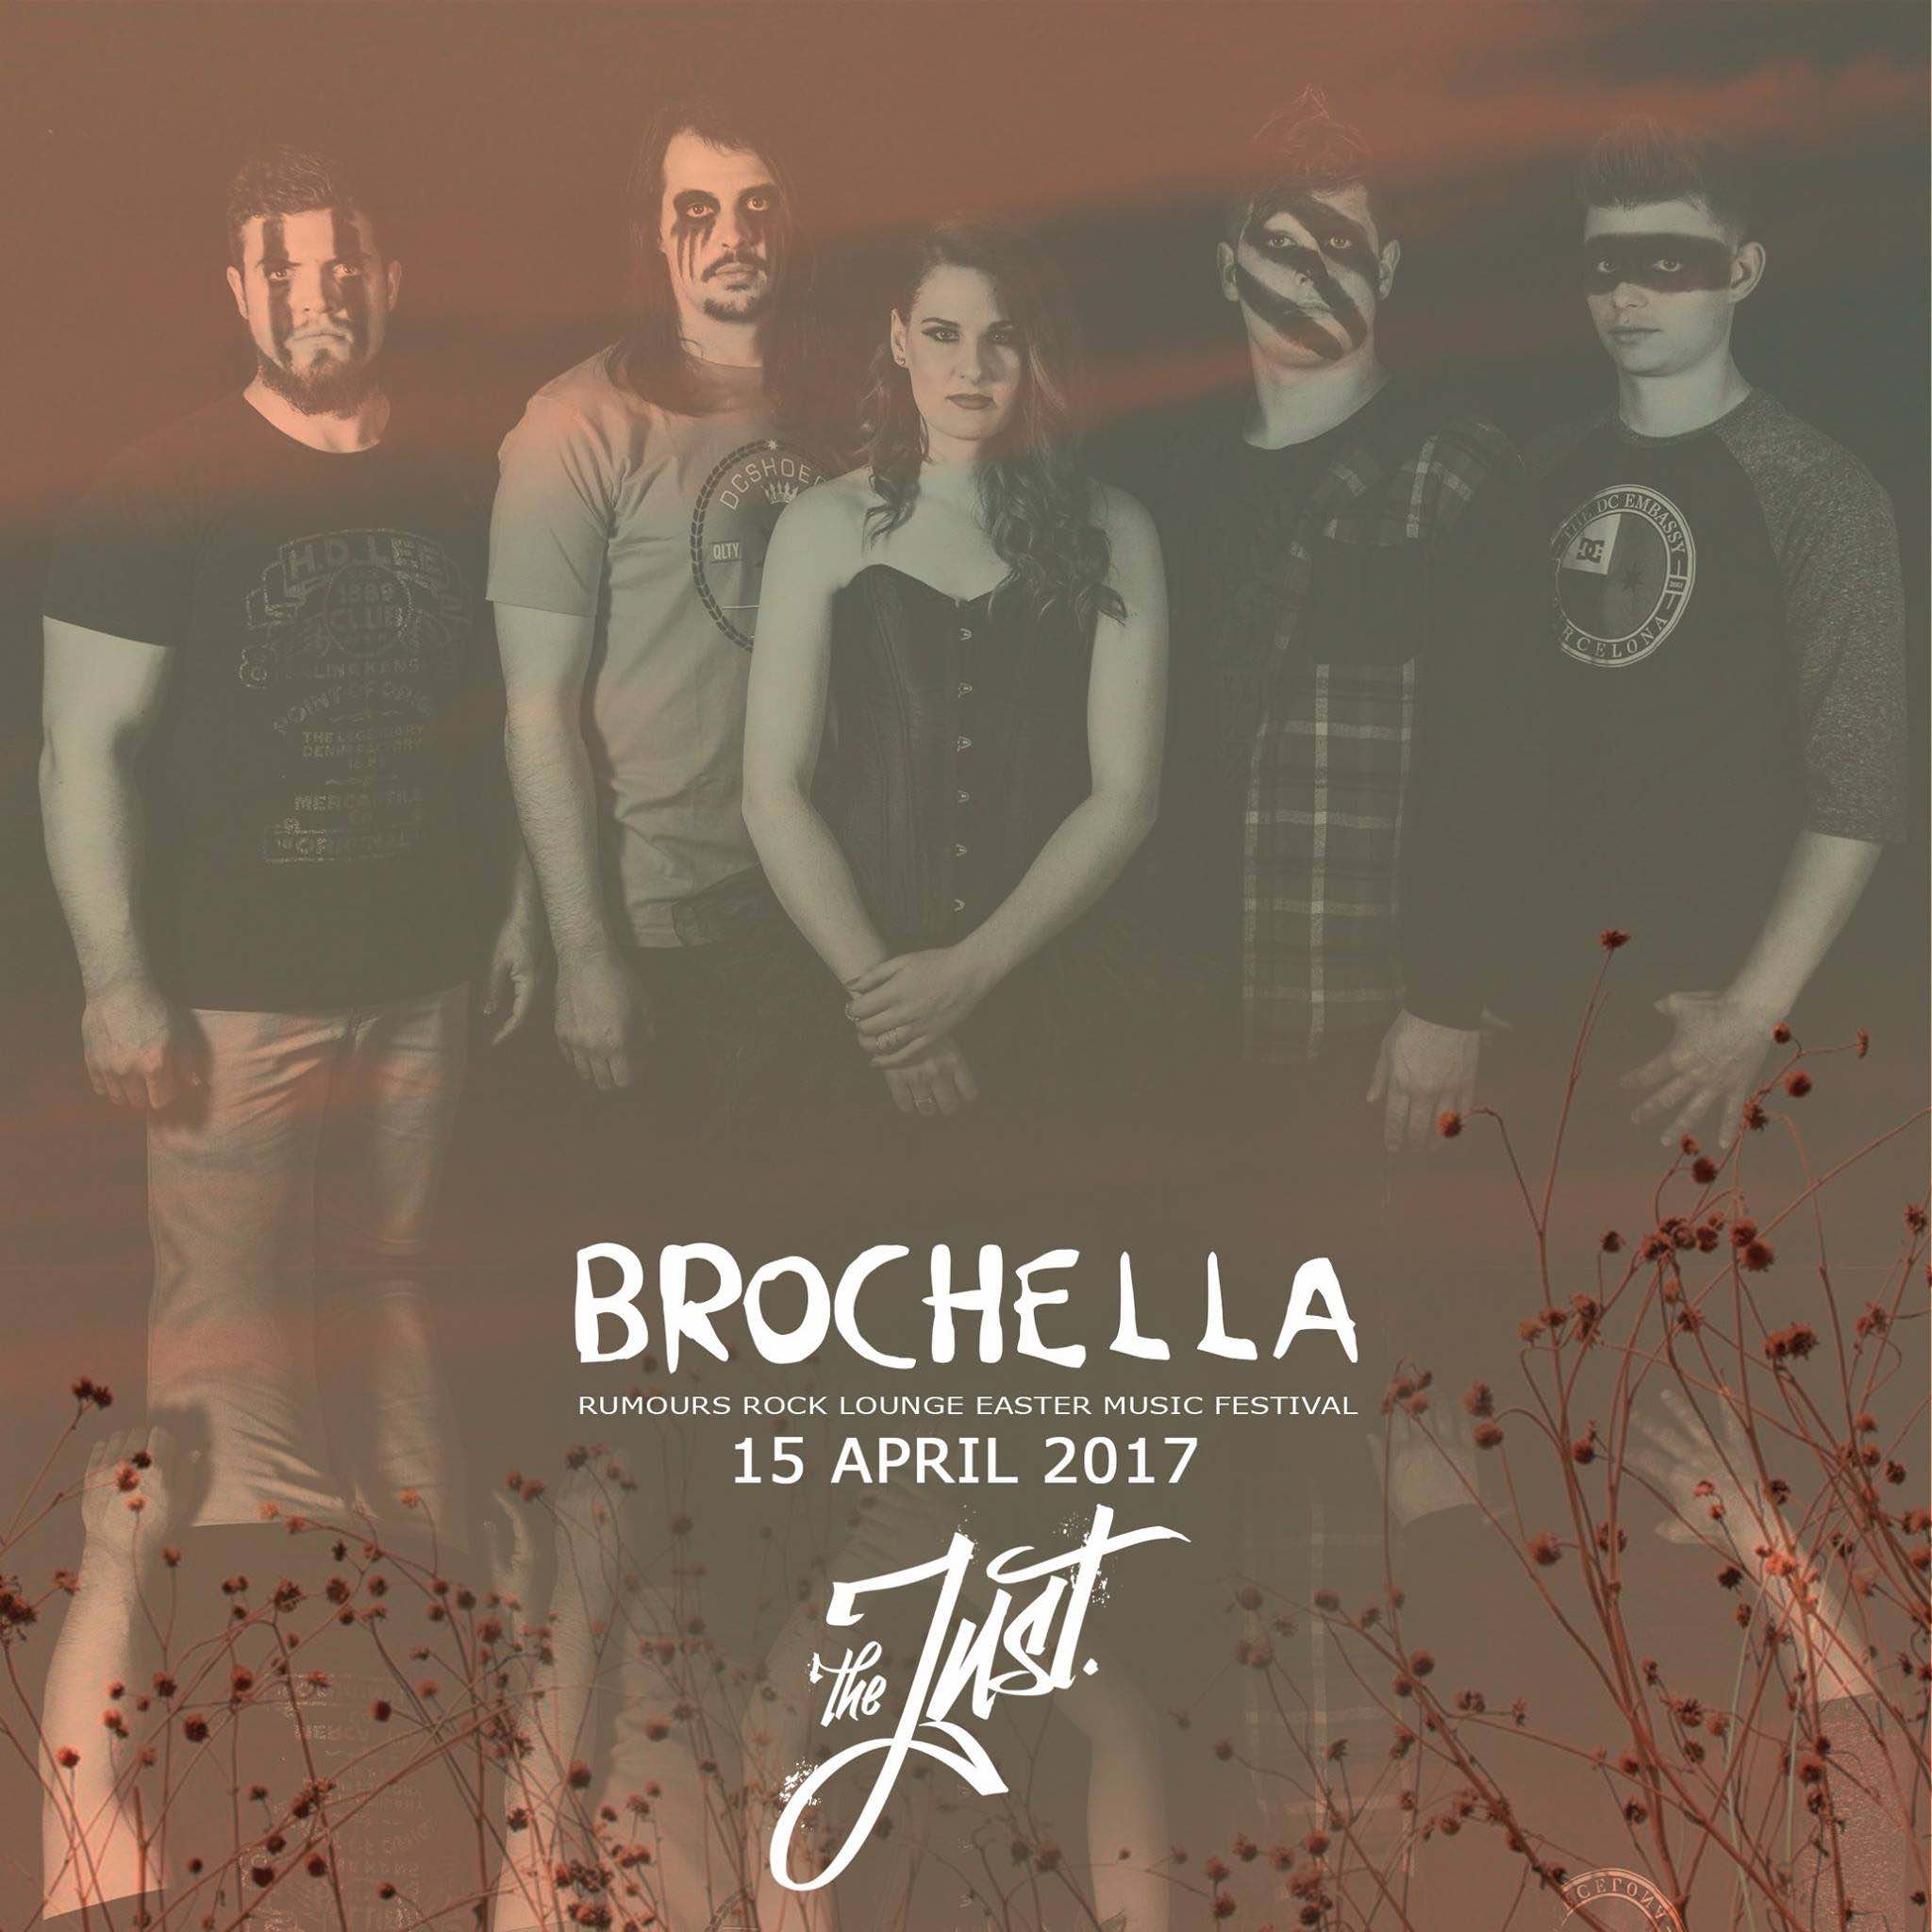 We interview The Just about Brochella Festival